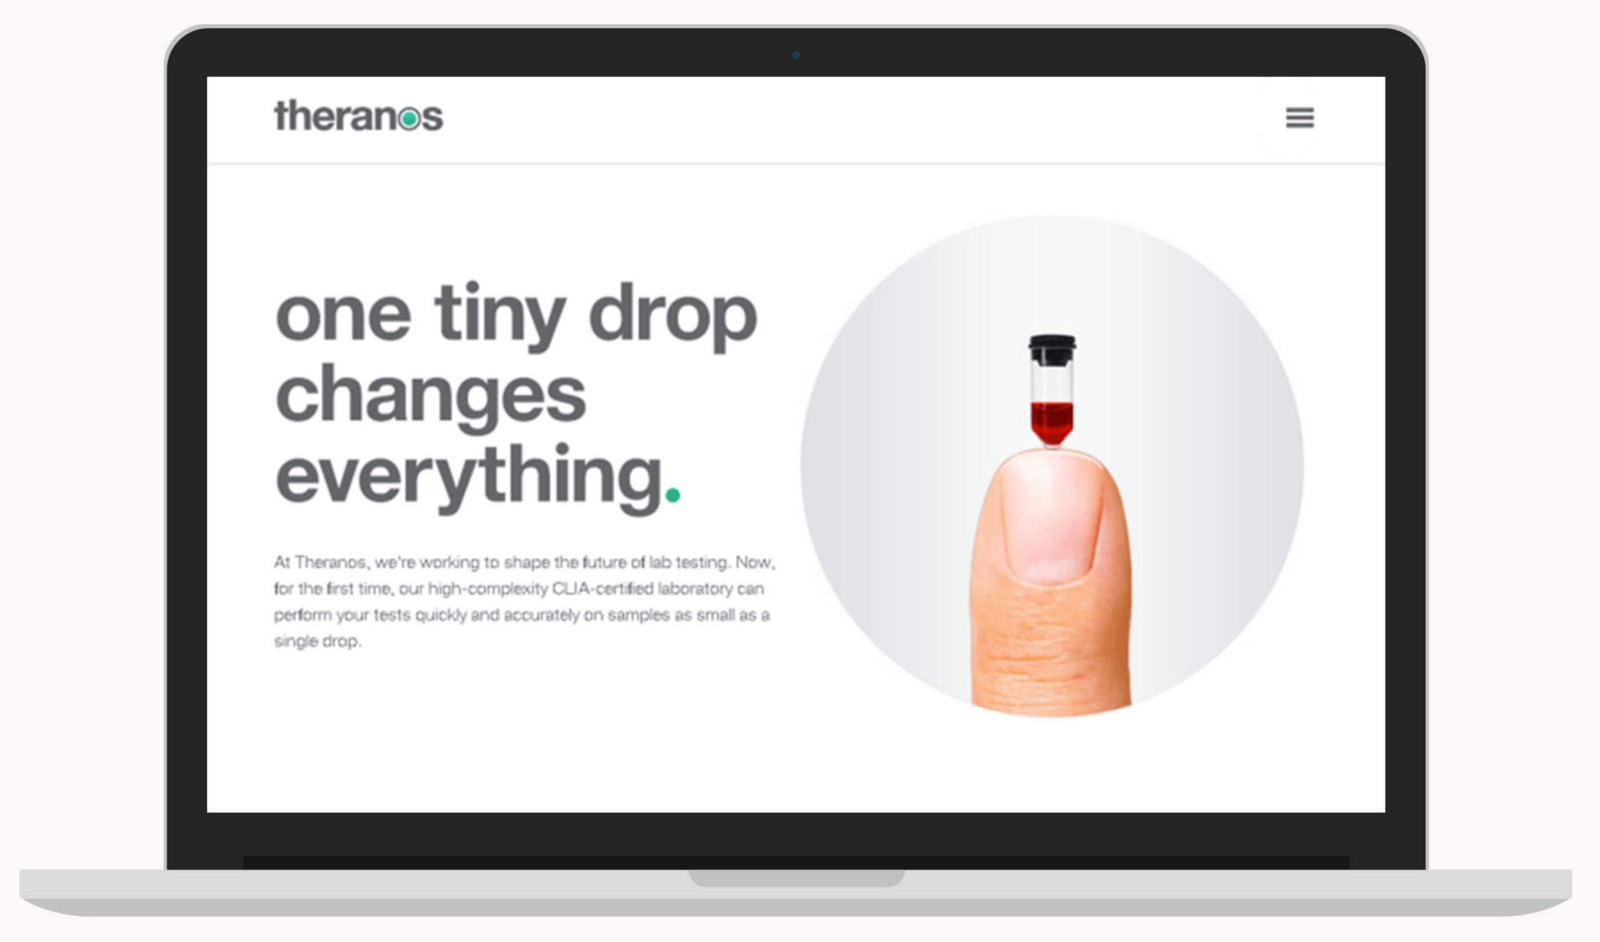 theranos-scandale